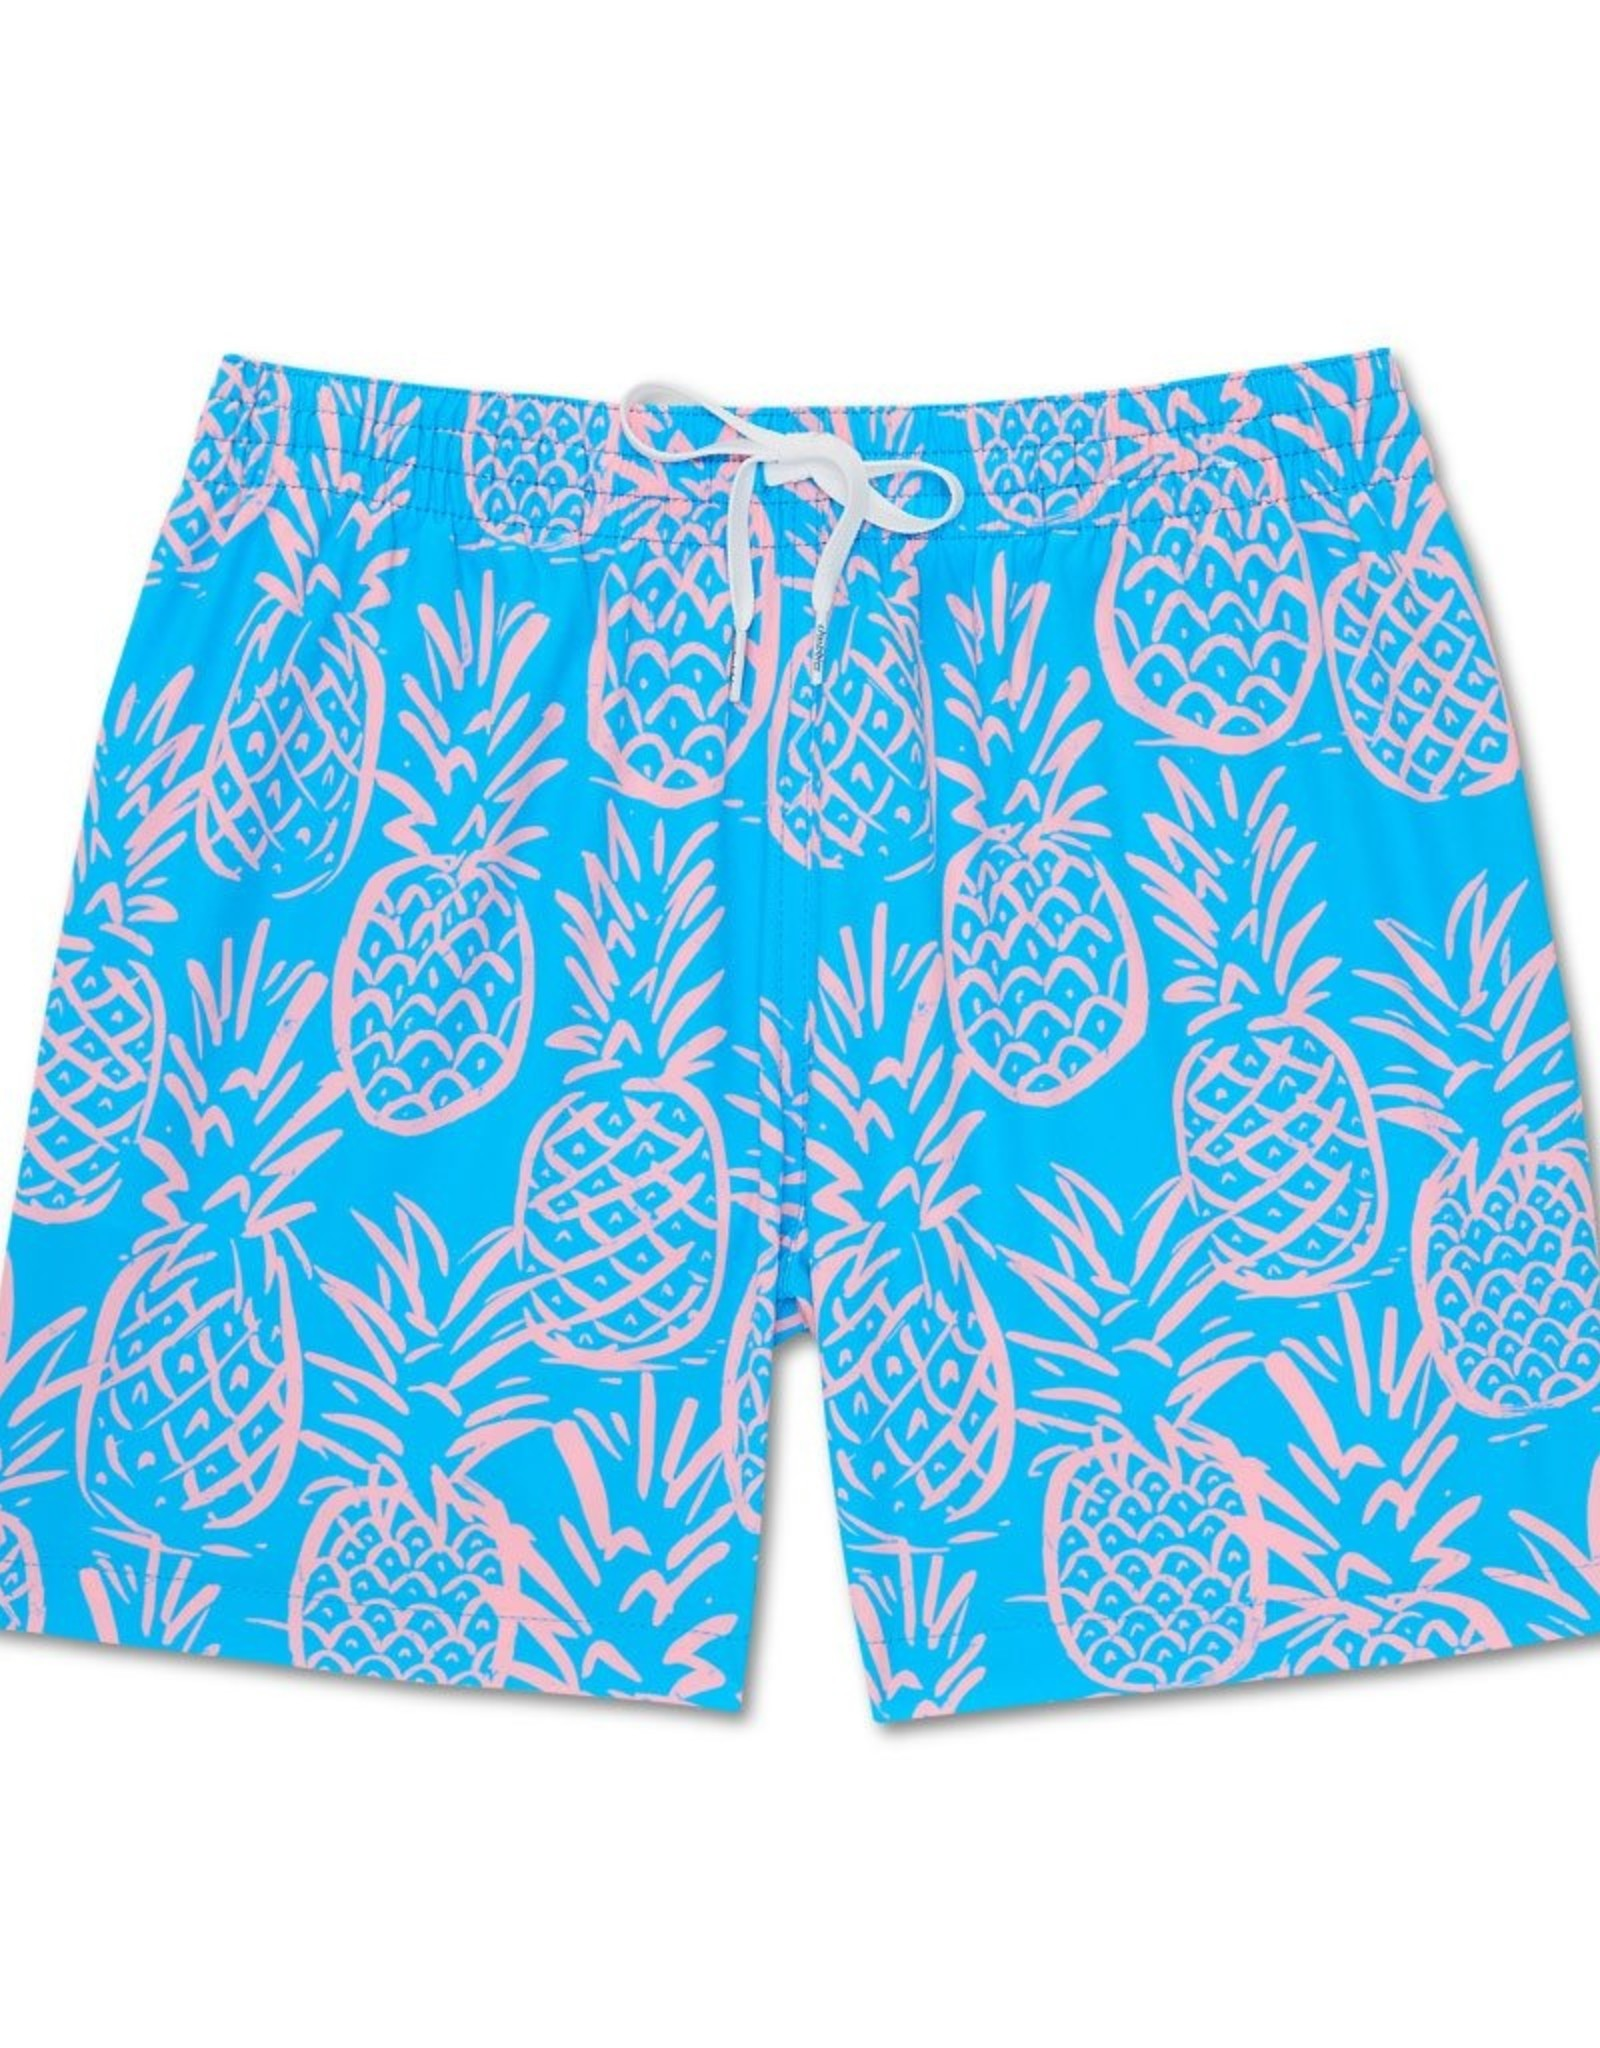 Chubbies The Prickly Guys 5.5""